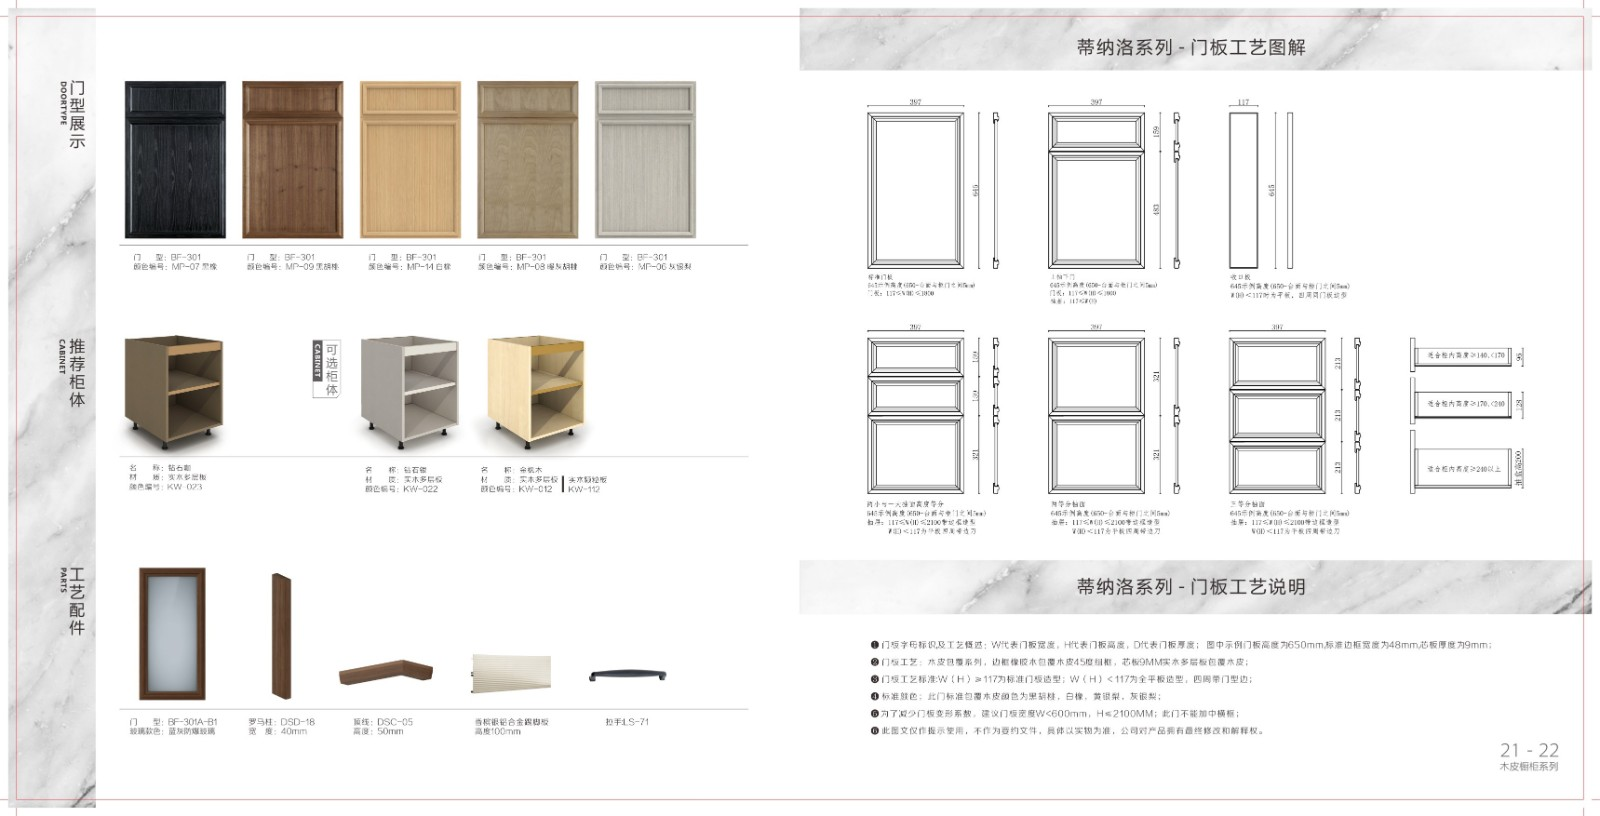 elegance solid wood kitchen cabinets modular supply exhibition hall-5